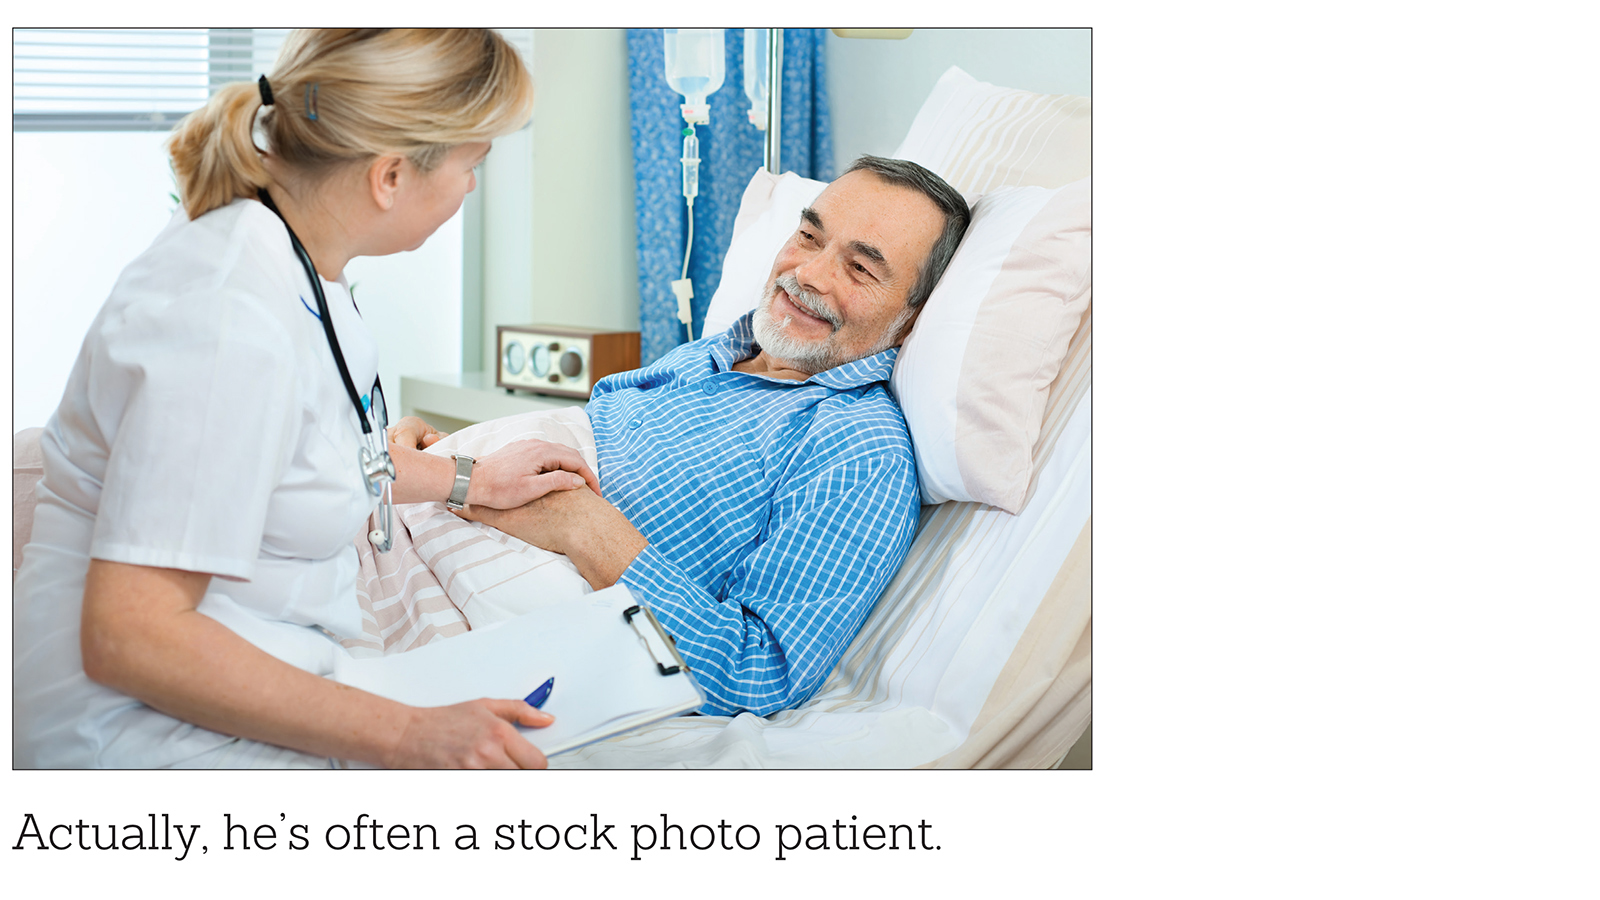 Dr. Stock 12